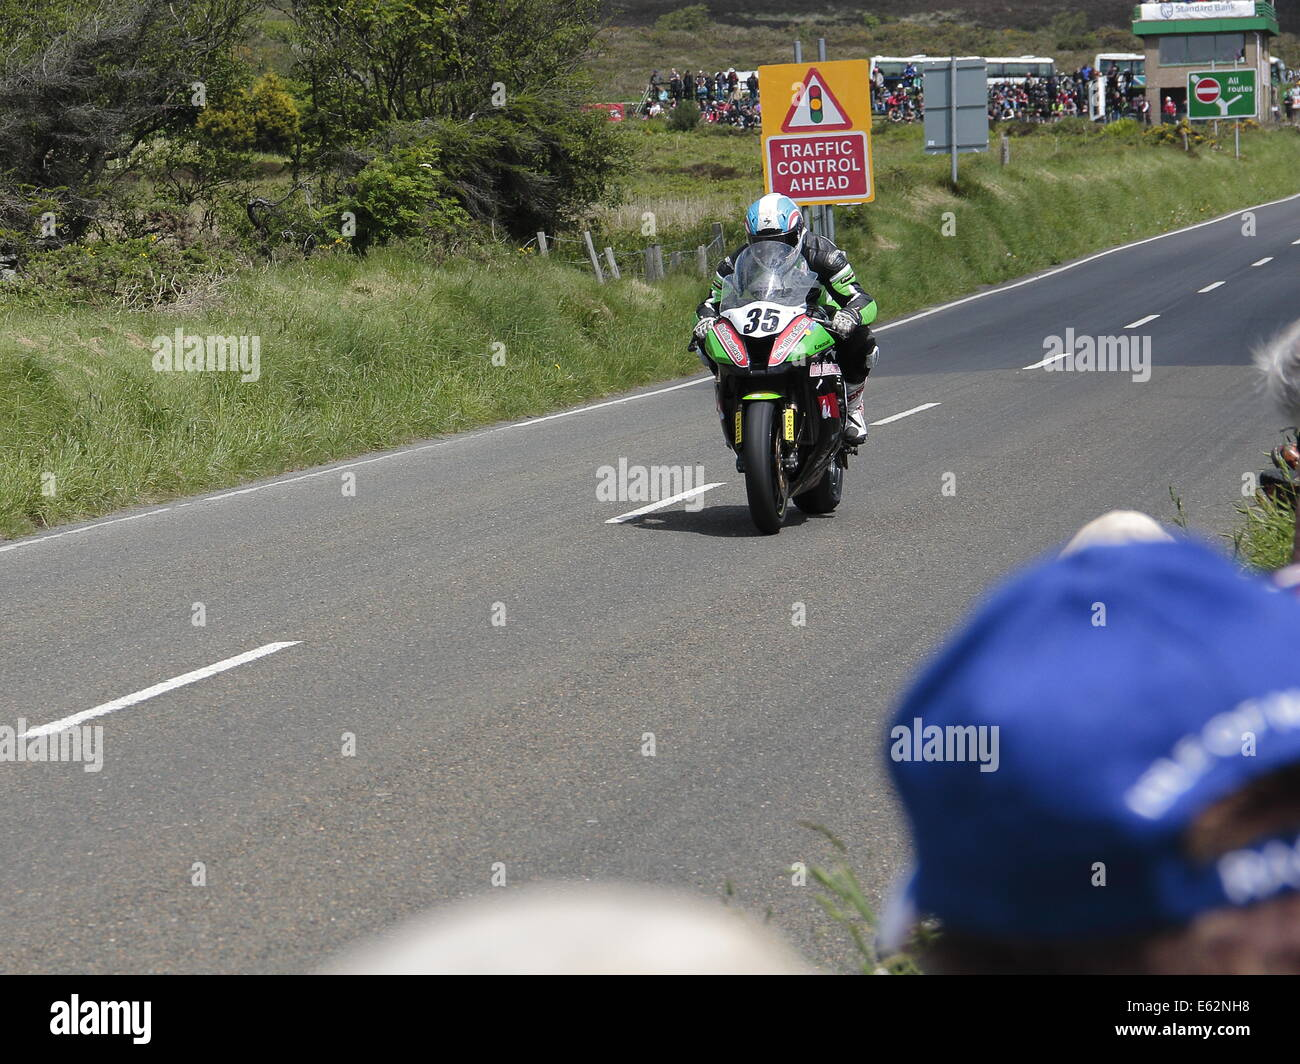 Karl Harris riding his Kawasaki, competing in the first Superbike race of the Isle of Man TT 2014. Stock Photo